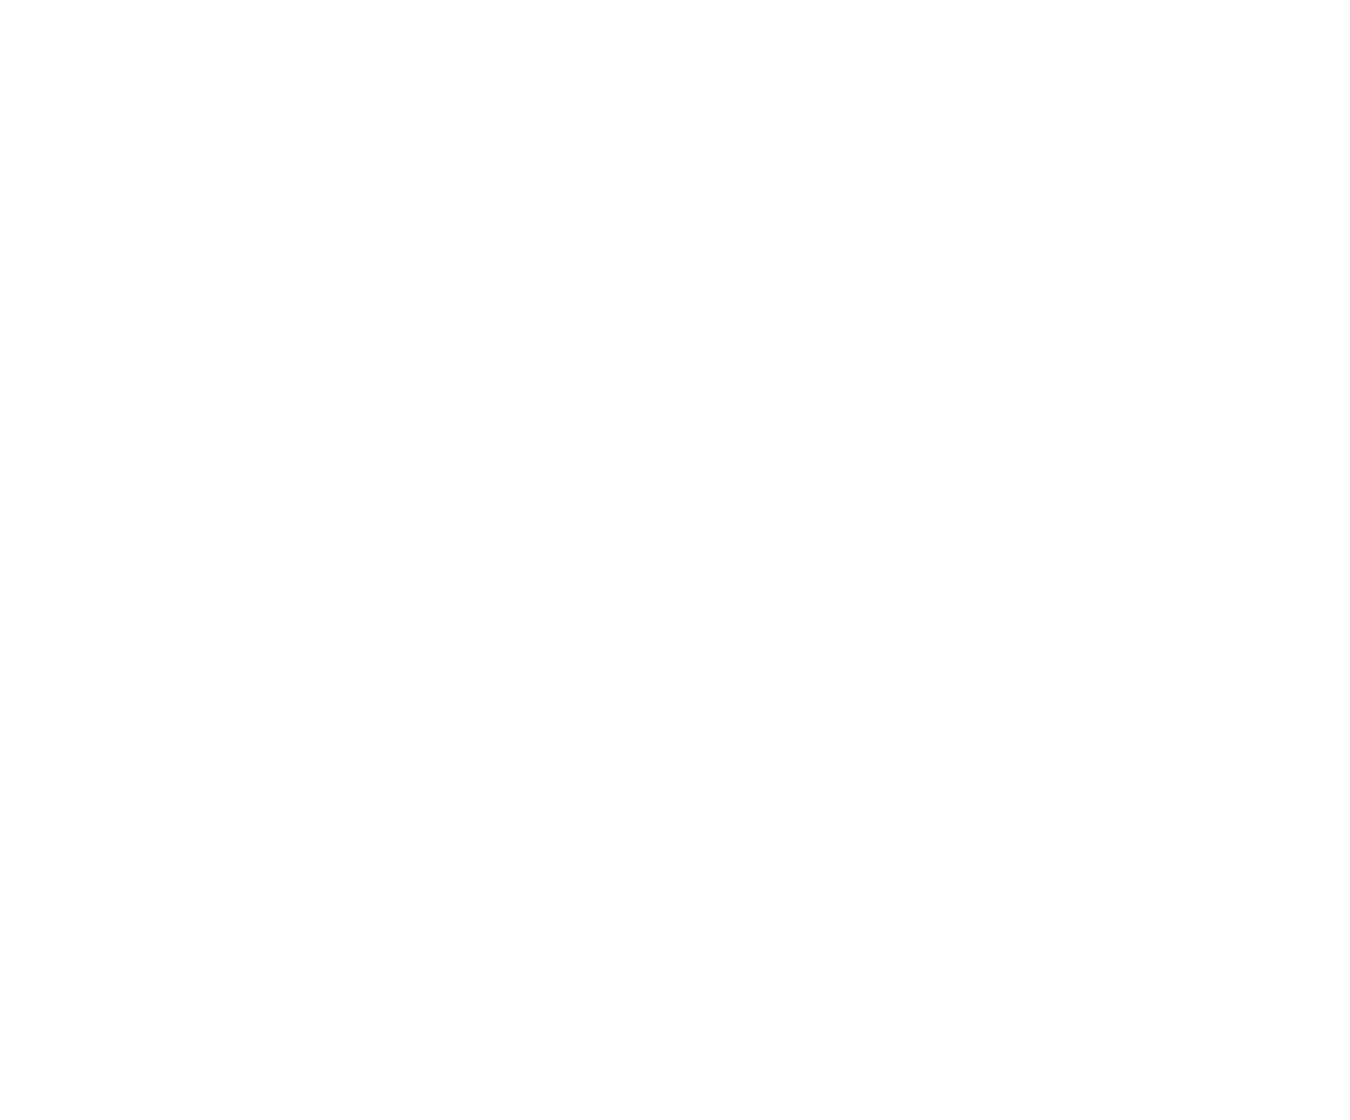 Nearby Facilities